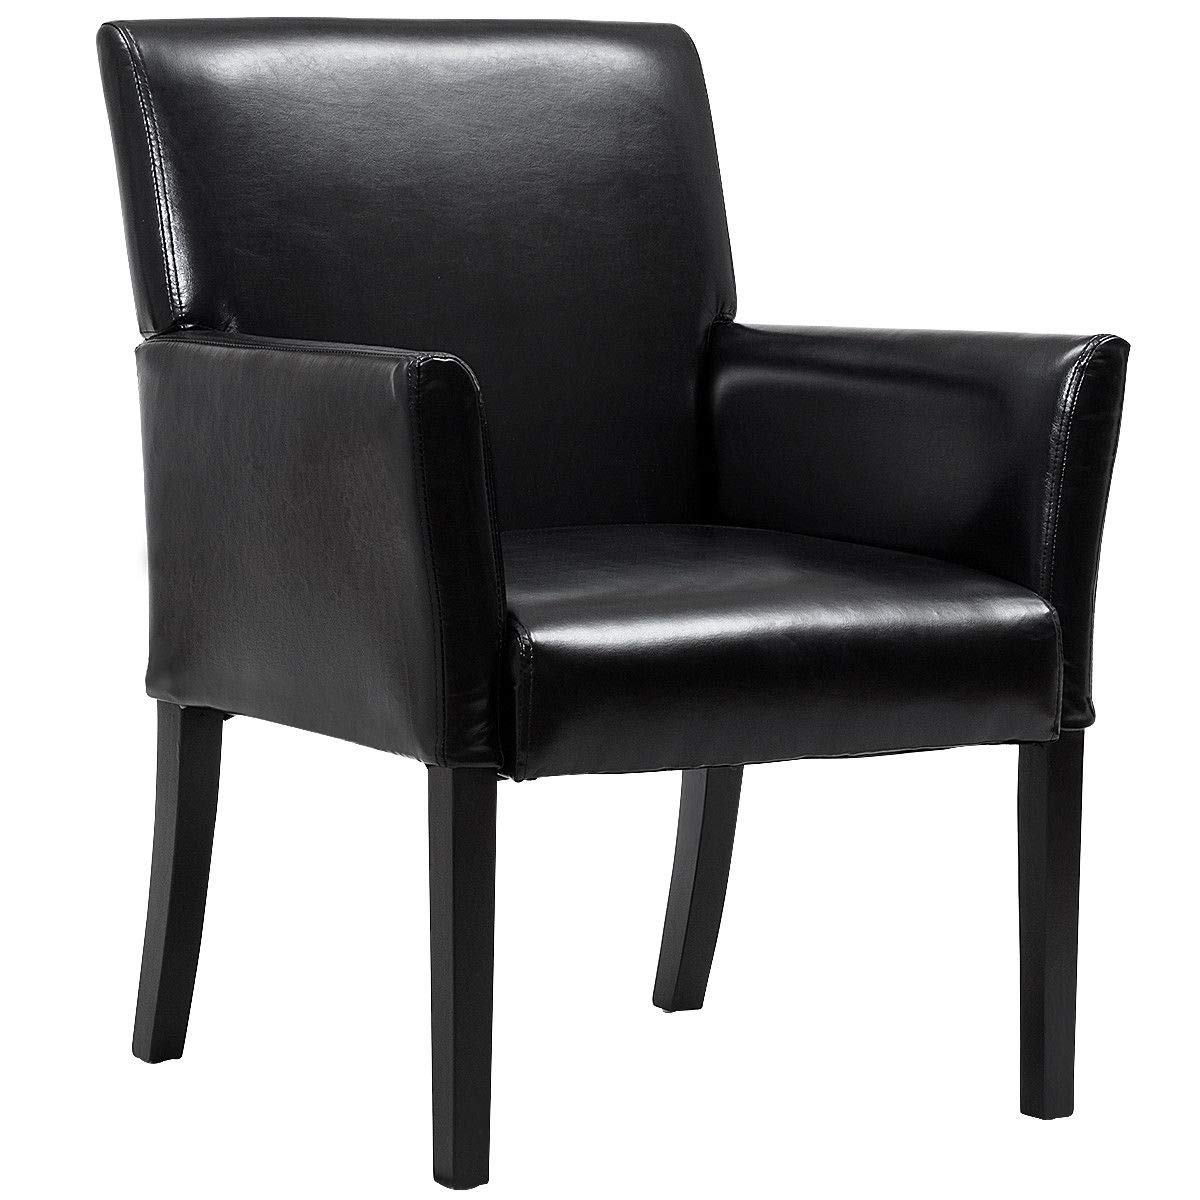 Black Leather Accent Chairs For Bariatric.Best Rated In Office Guest Chairs Reception Chairs Helpful